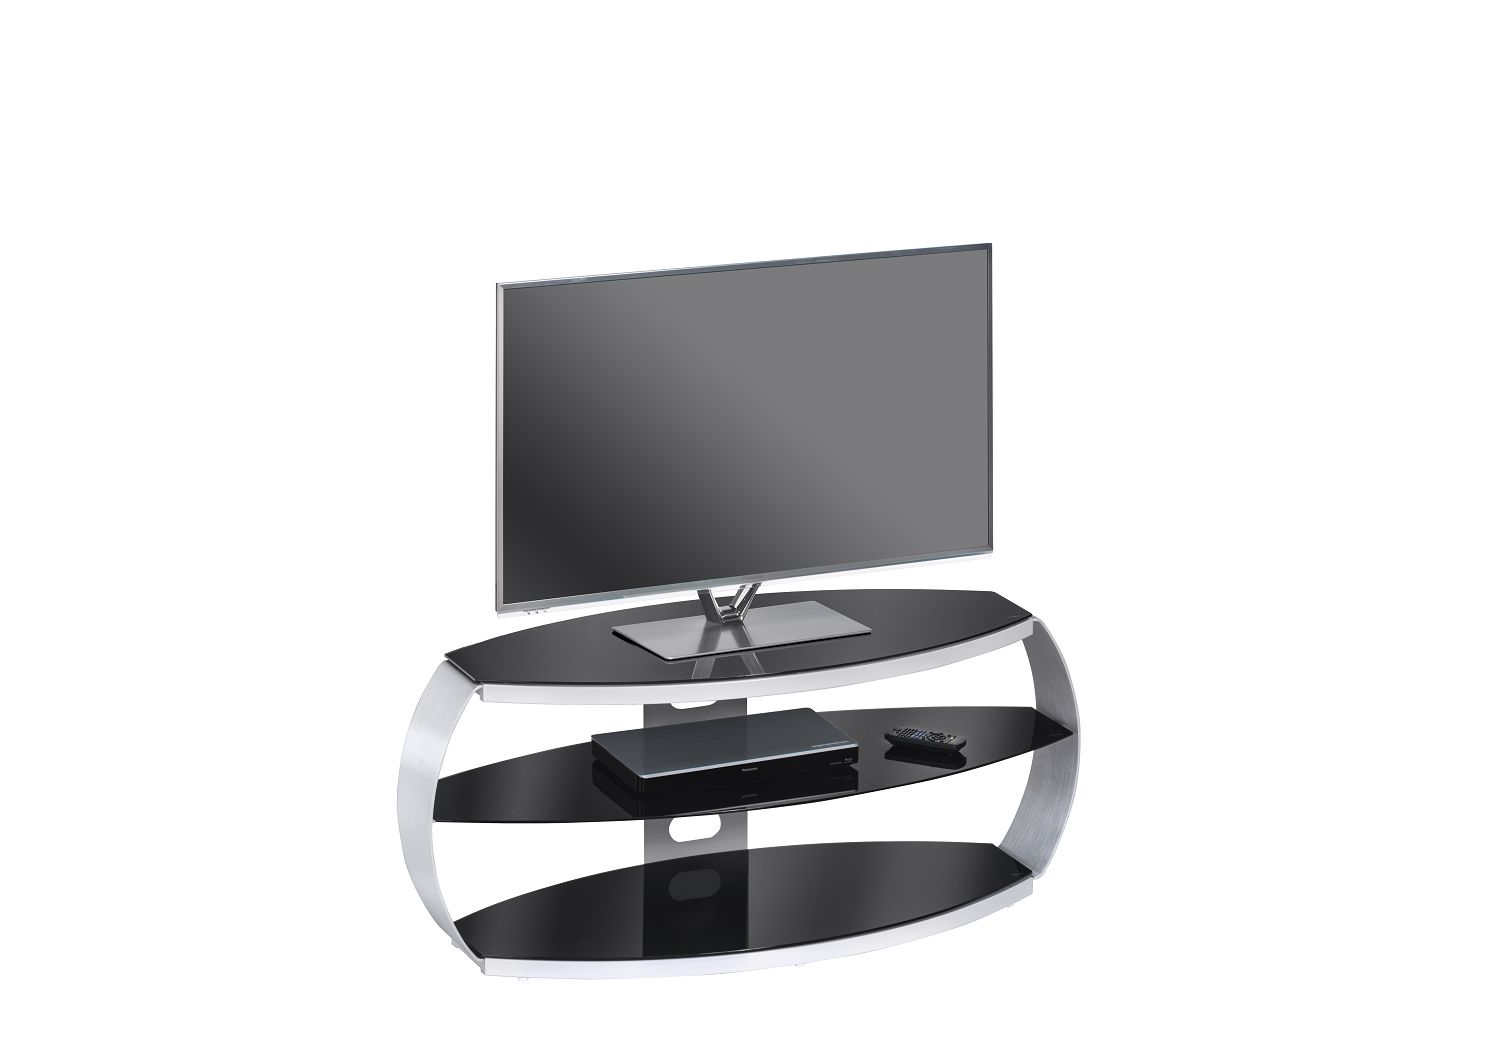 tv rack tv board tv ablage glastisch glas mod mj100 metall alu schwarzglas ebay. Black Bedroom Furniture Sets. Home Design Ideas